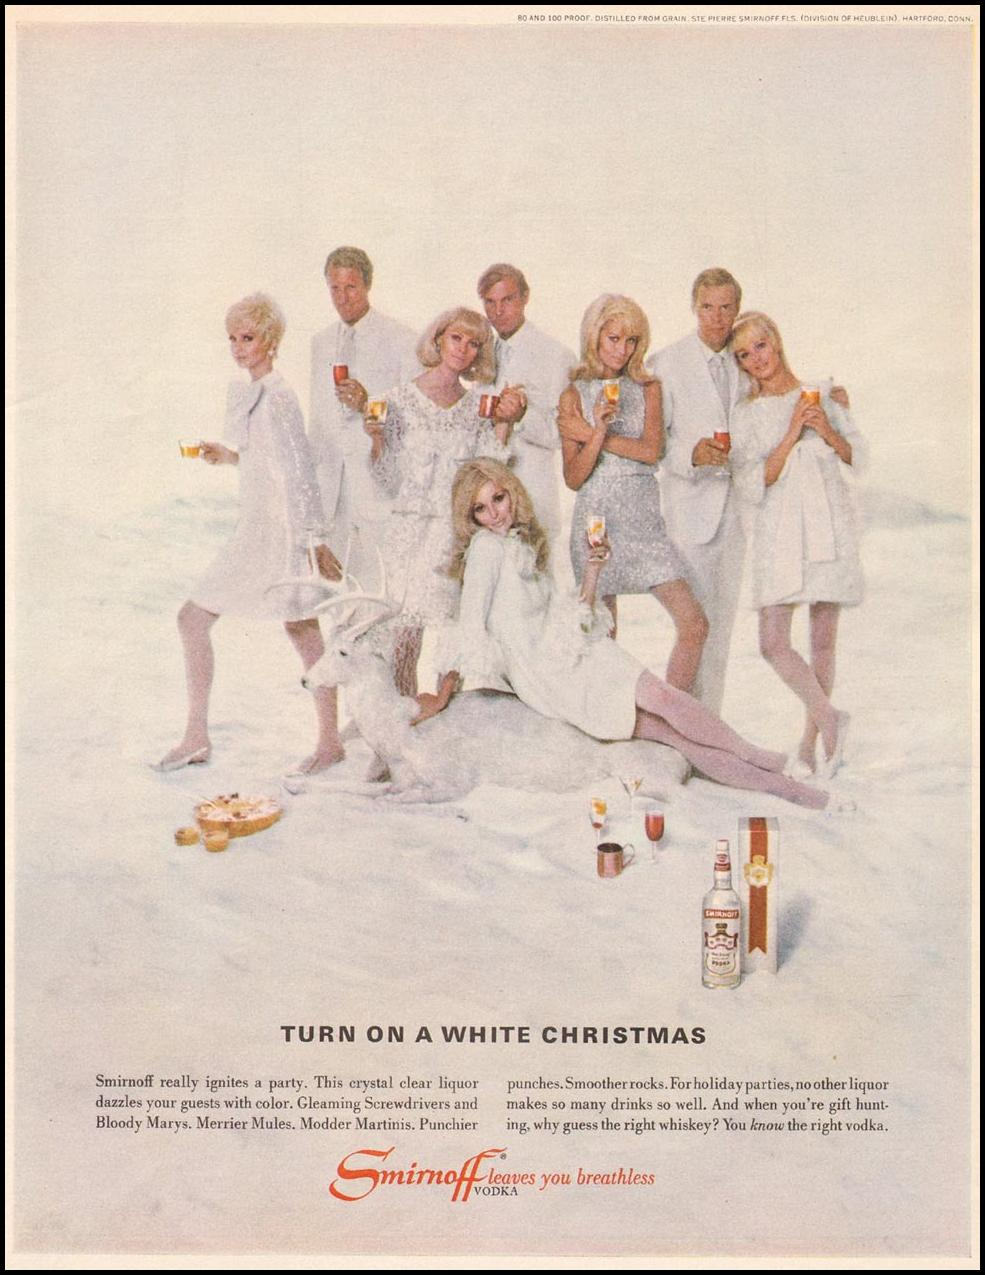 SMIRNOFF VODKA